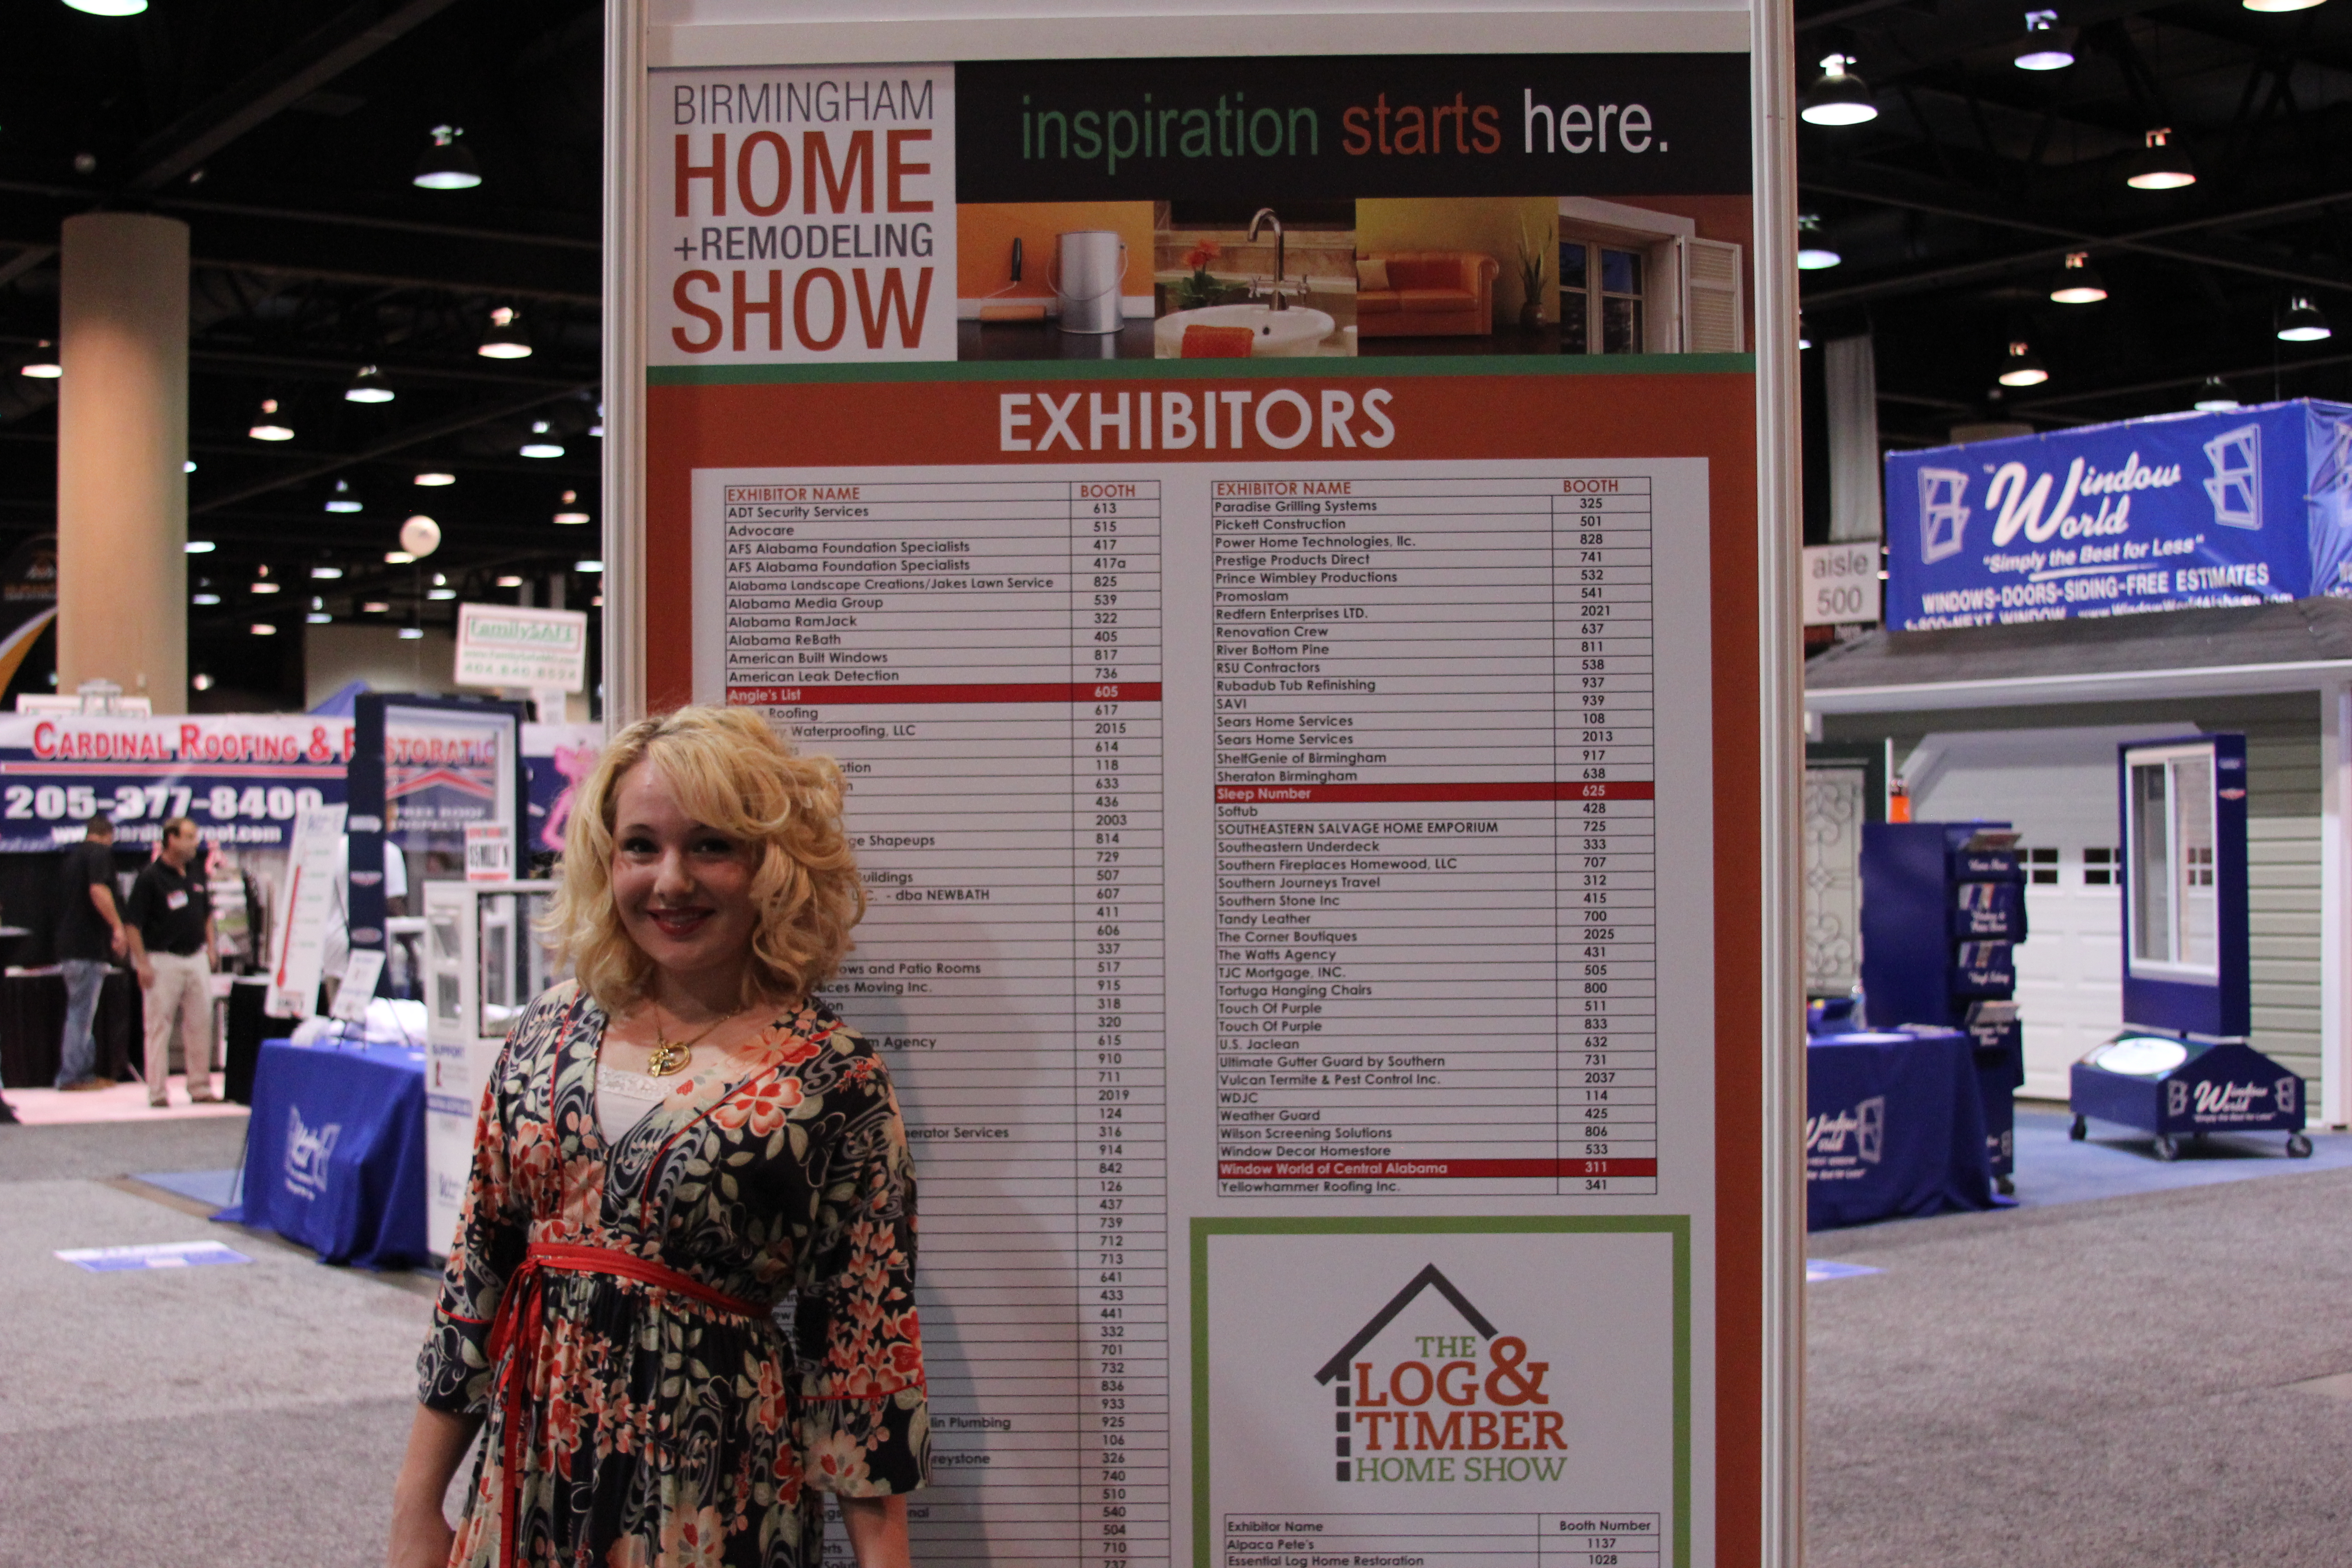 Birmingham Home and Remodeling Show 2014